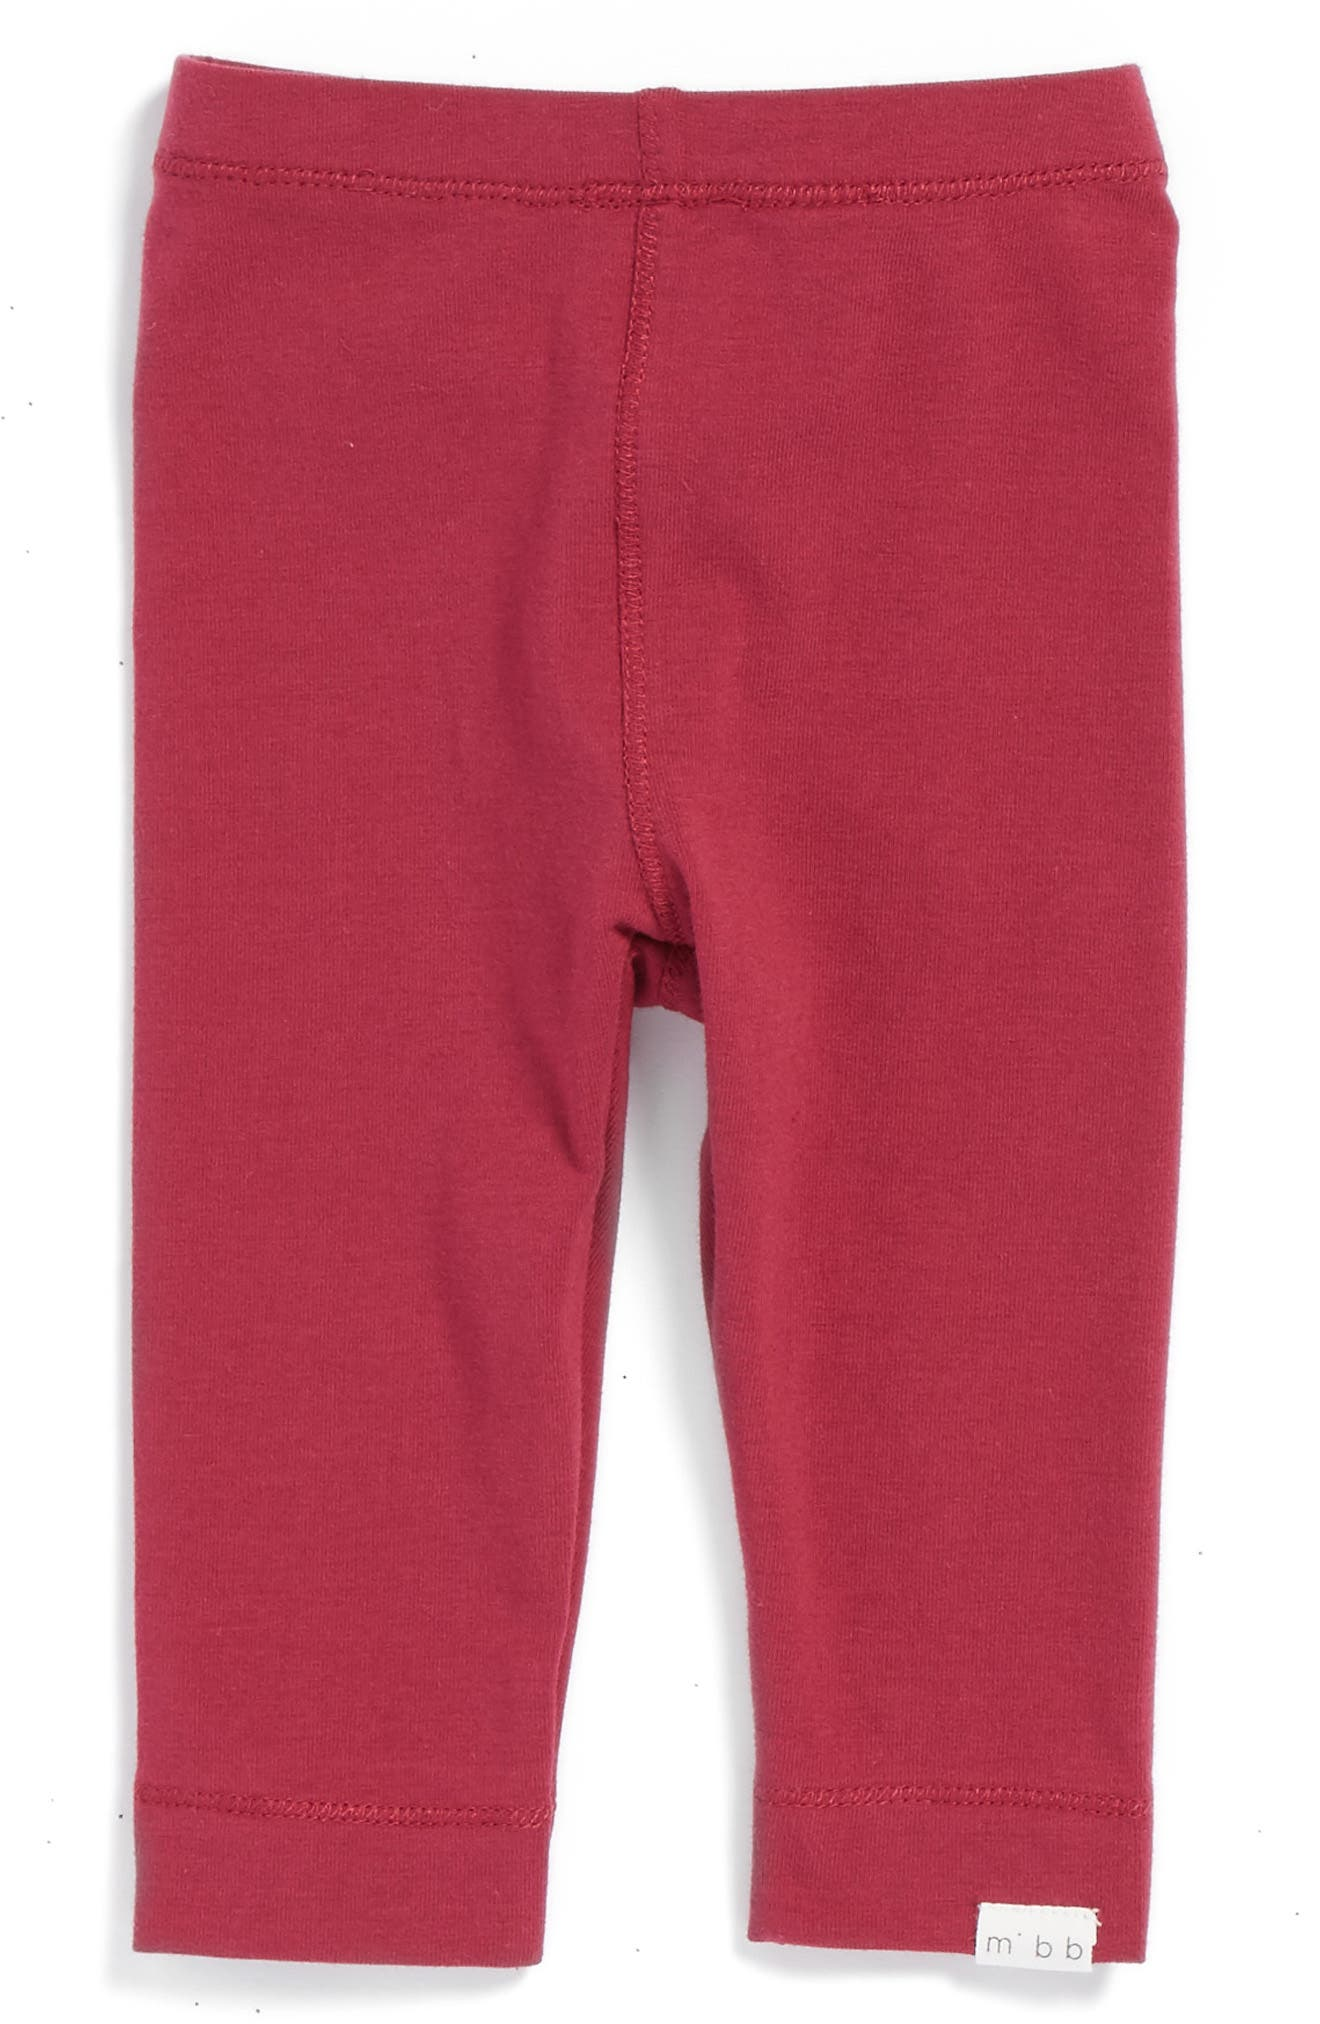 Main Image - Miles Baby Knit Leggings (Baby Girls)